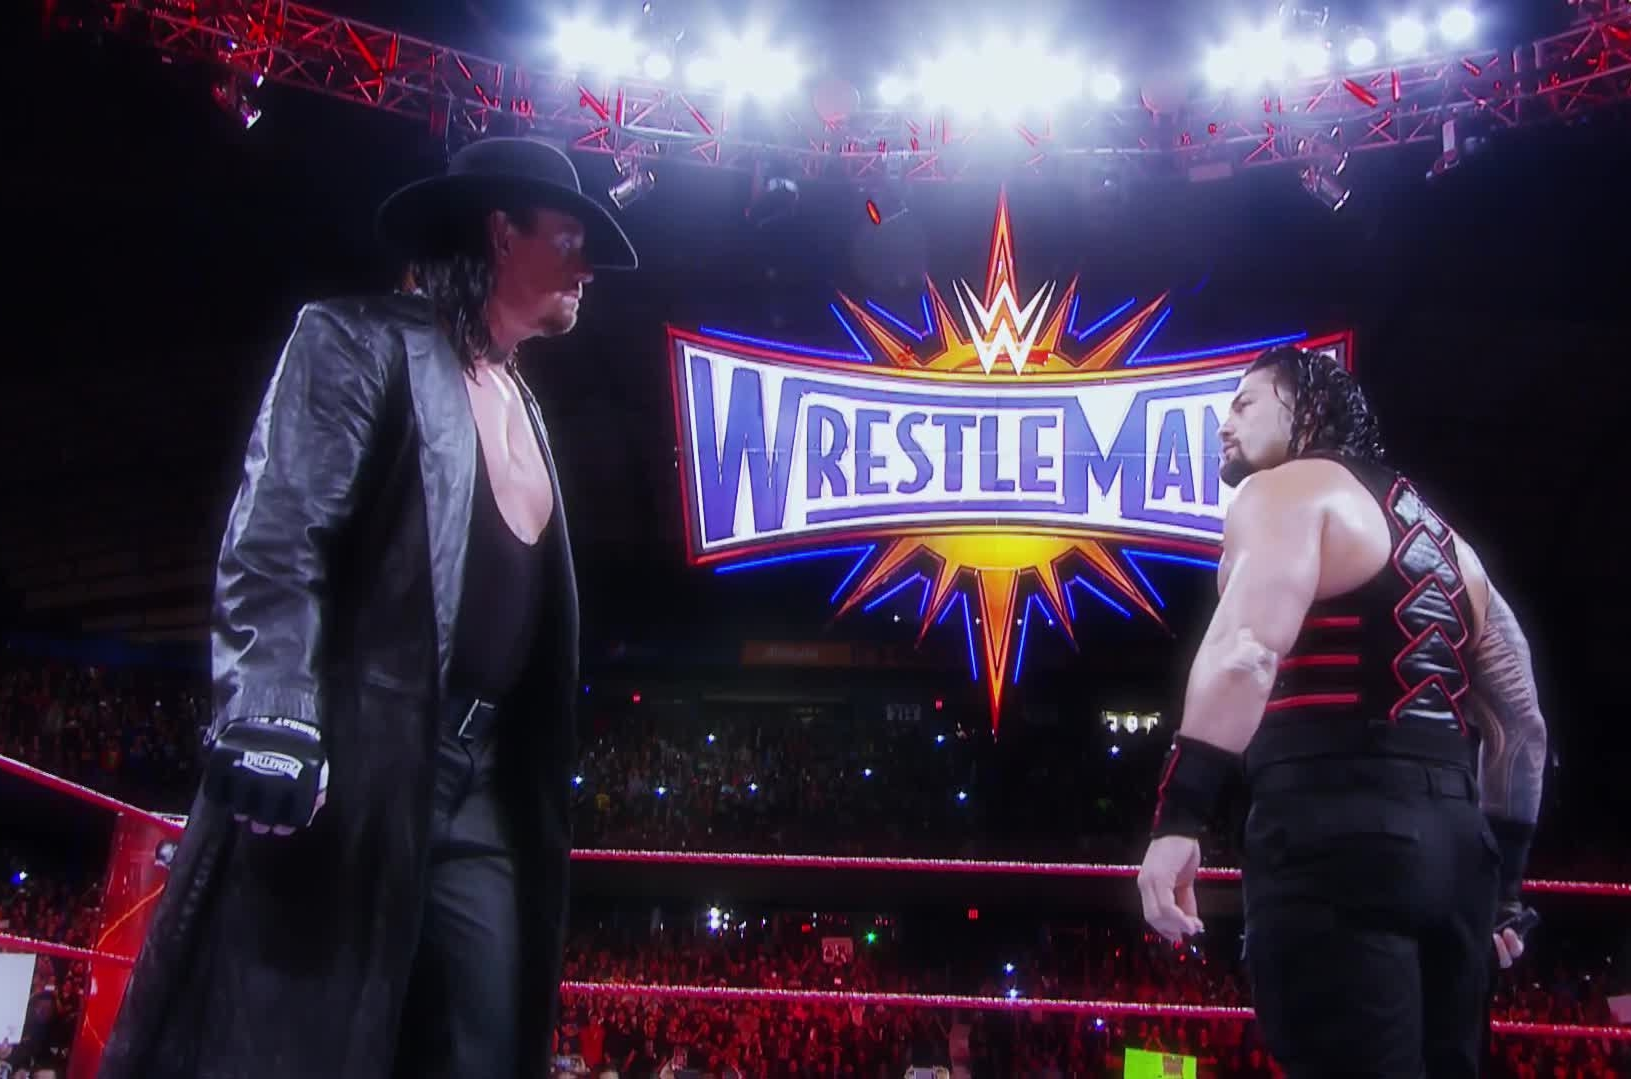 WWE Extreme Rules 2019: The Undertaker steals show, main event misfires